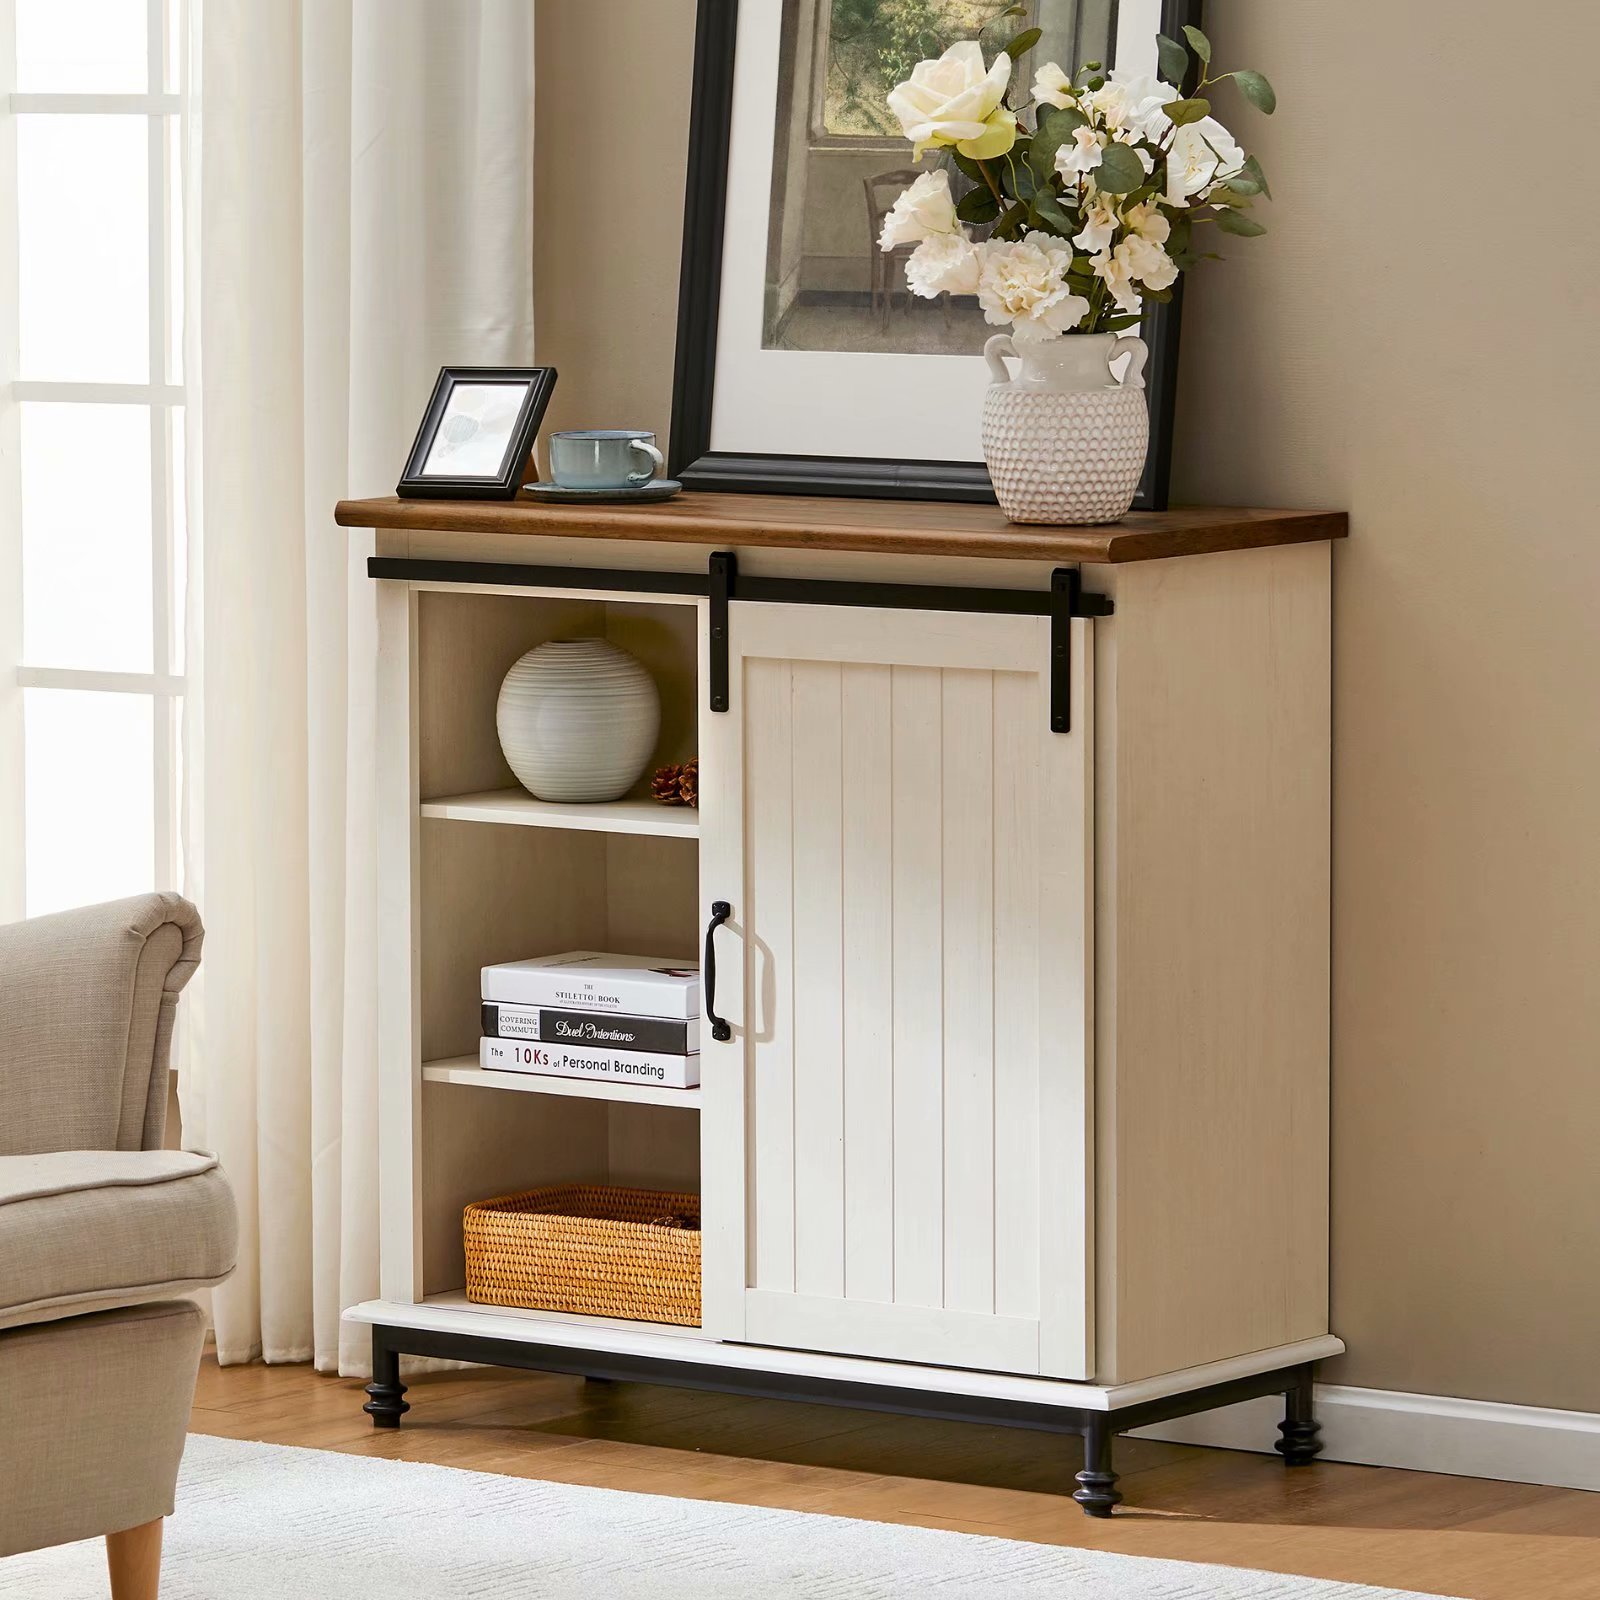 Solid Wood Accent Storage Cabinet Decorating Ideas And Accessories For The Home Creative Every Room